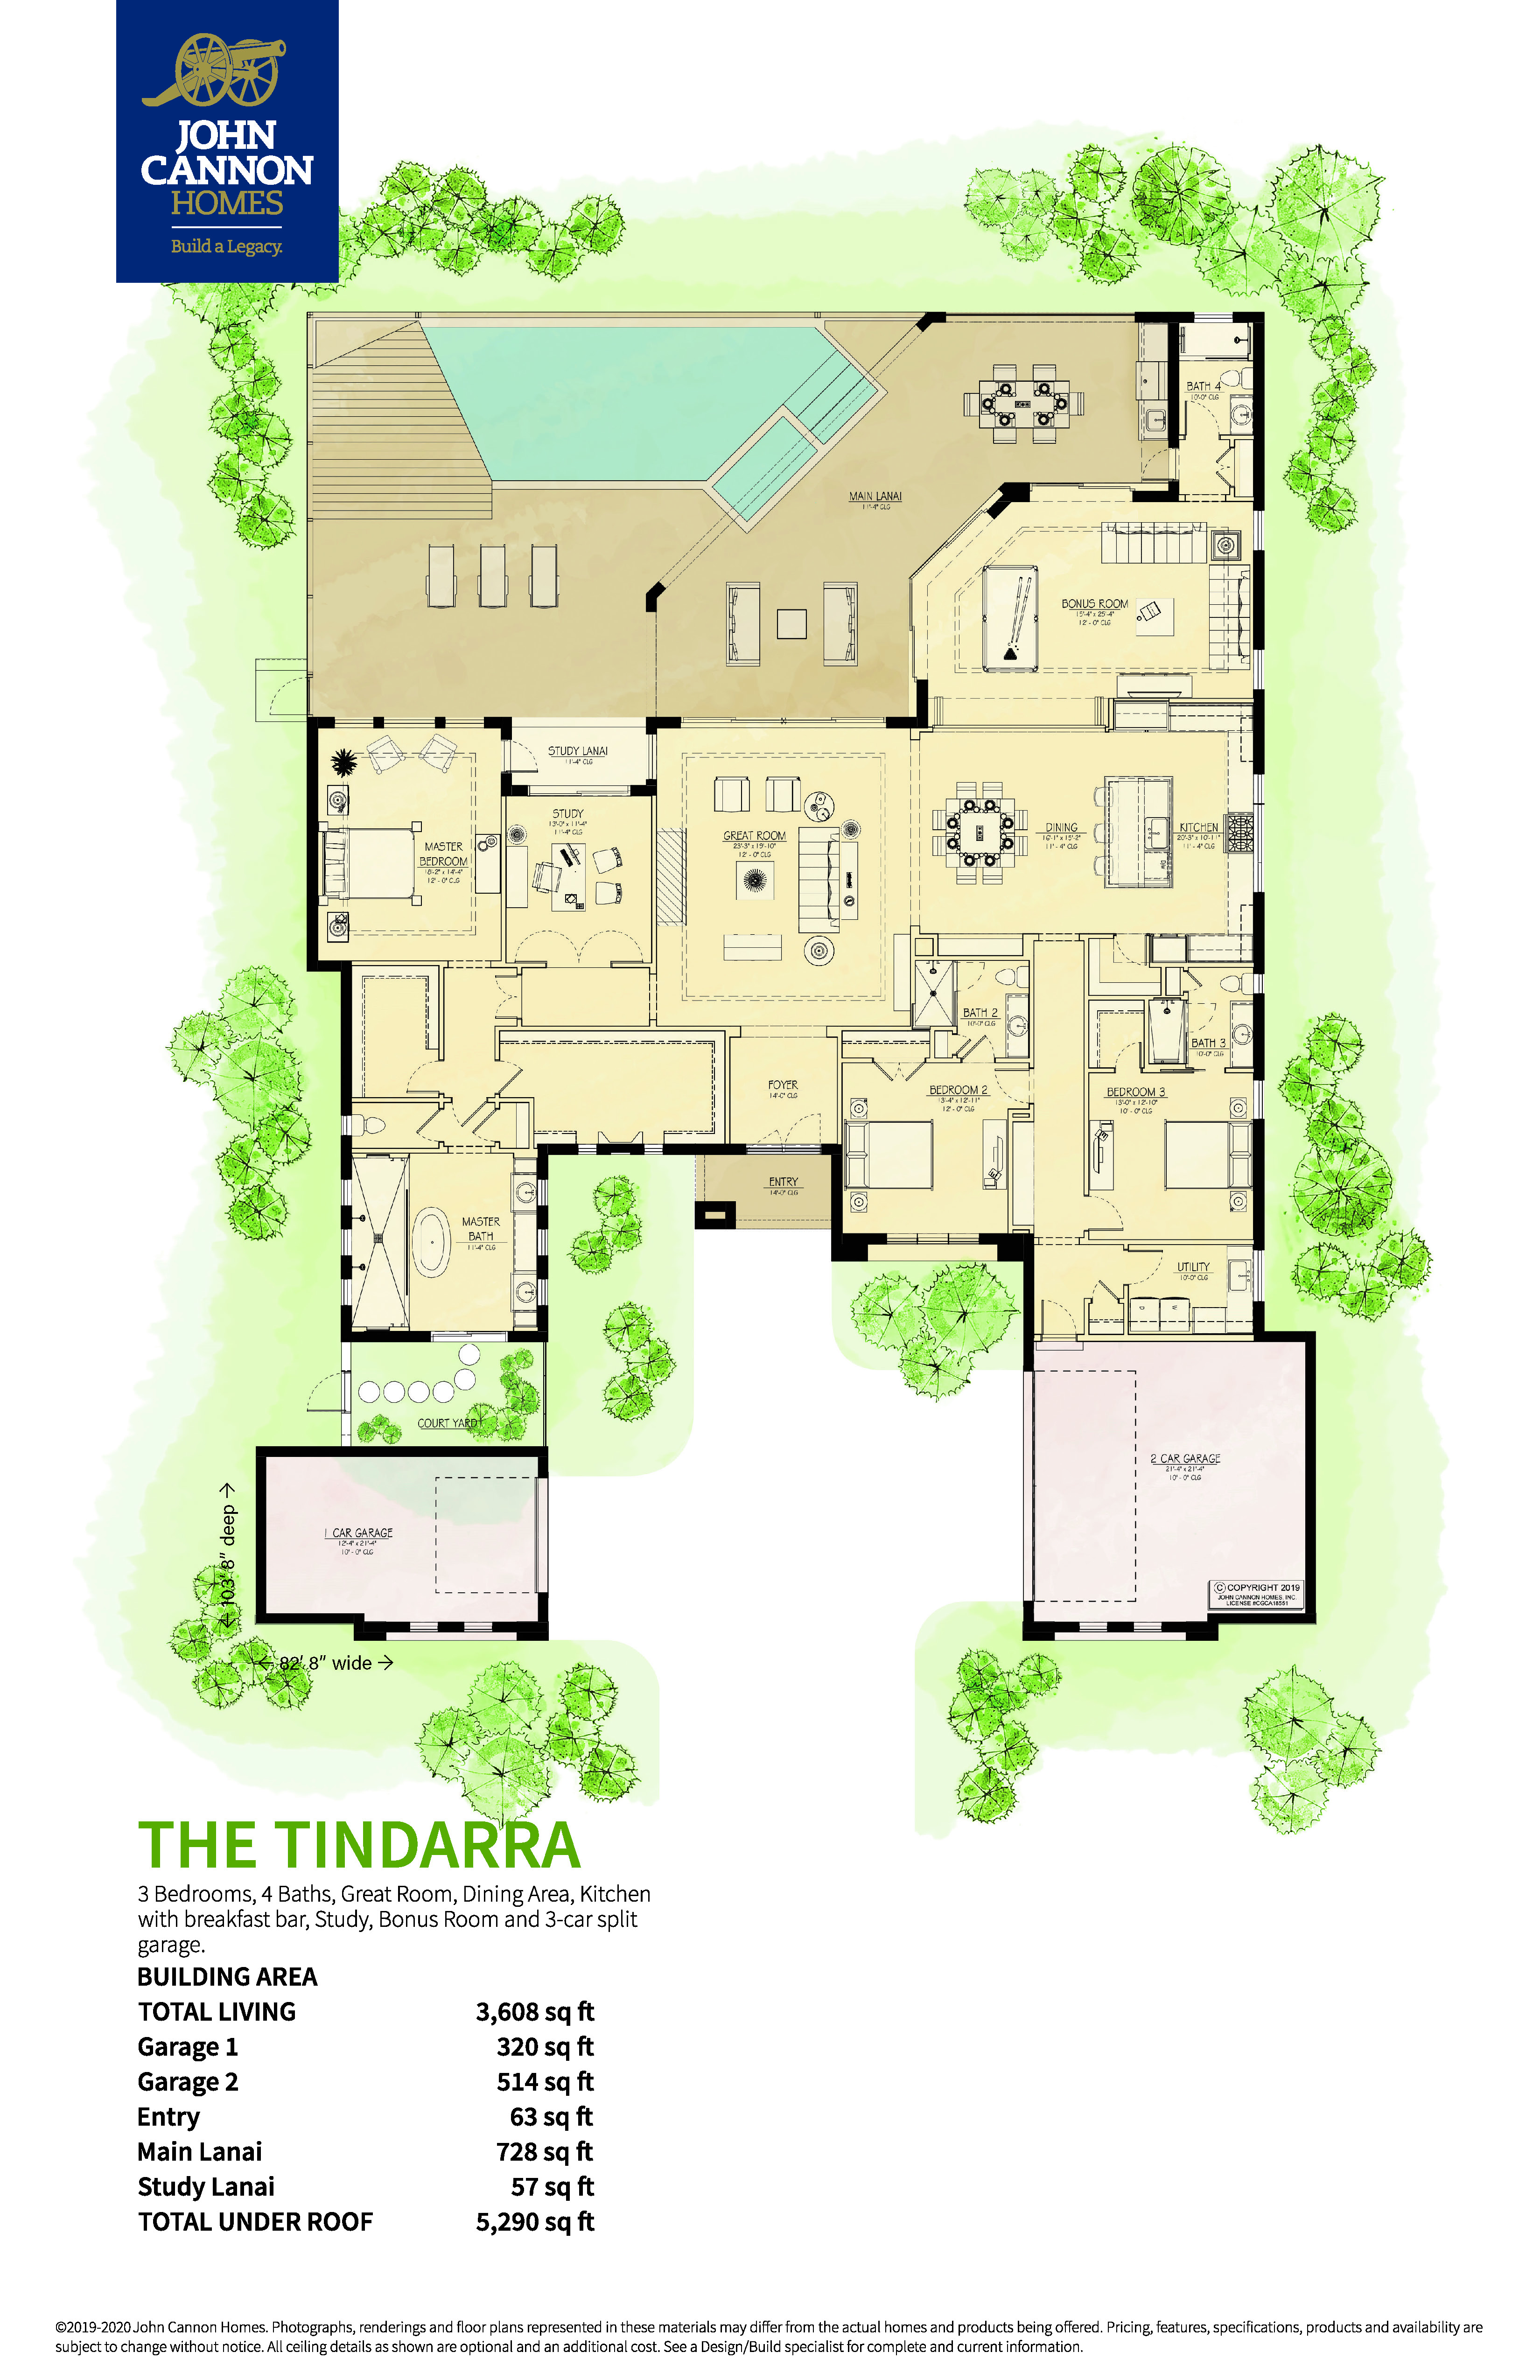 The Tindarra Floorplan